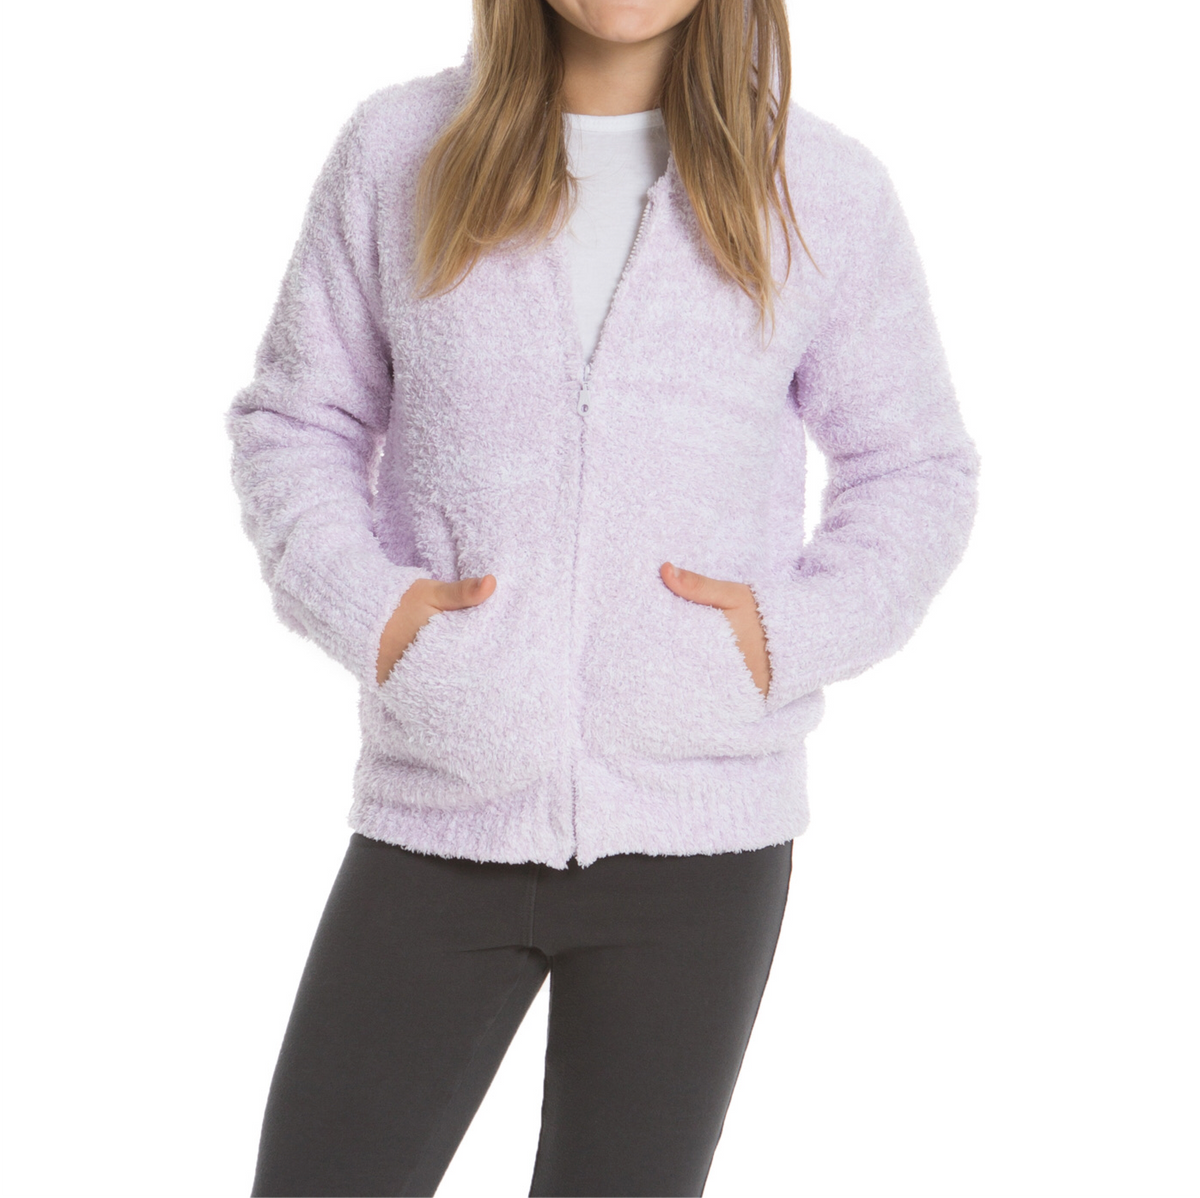 CozyChic Heathered Youth Zip-Up Hoodie - Wheat Boutique